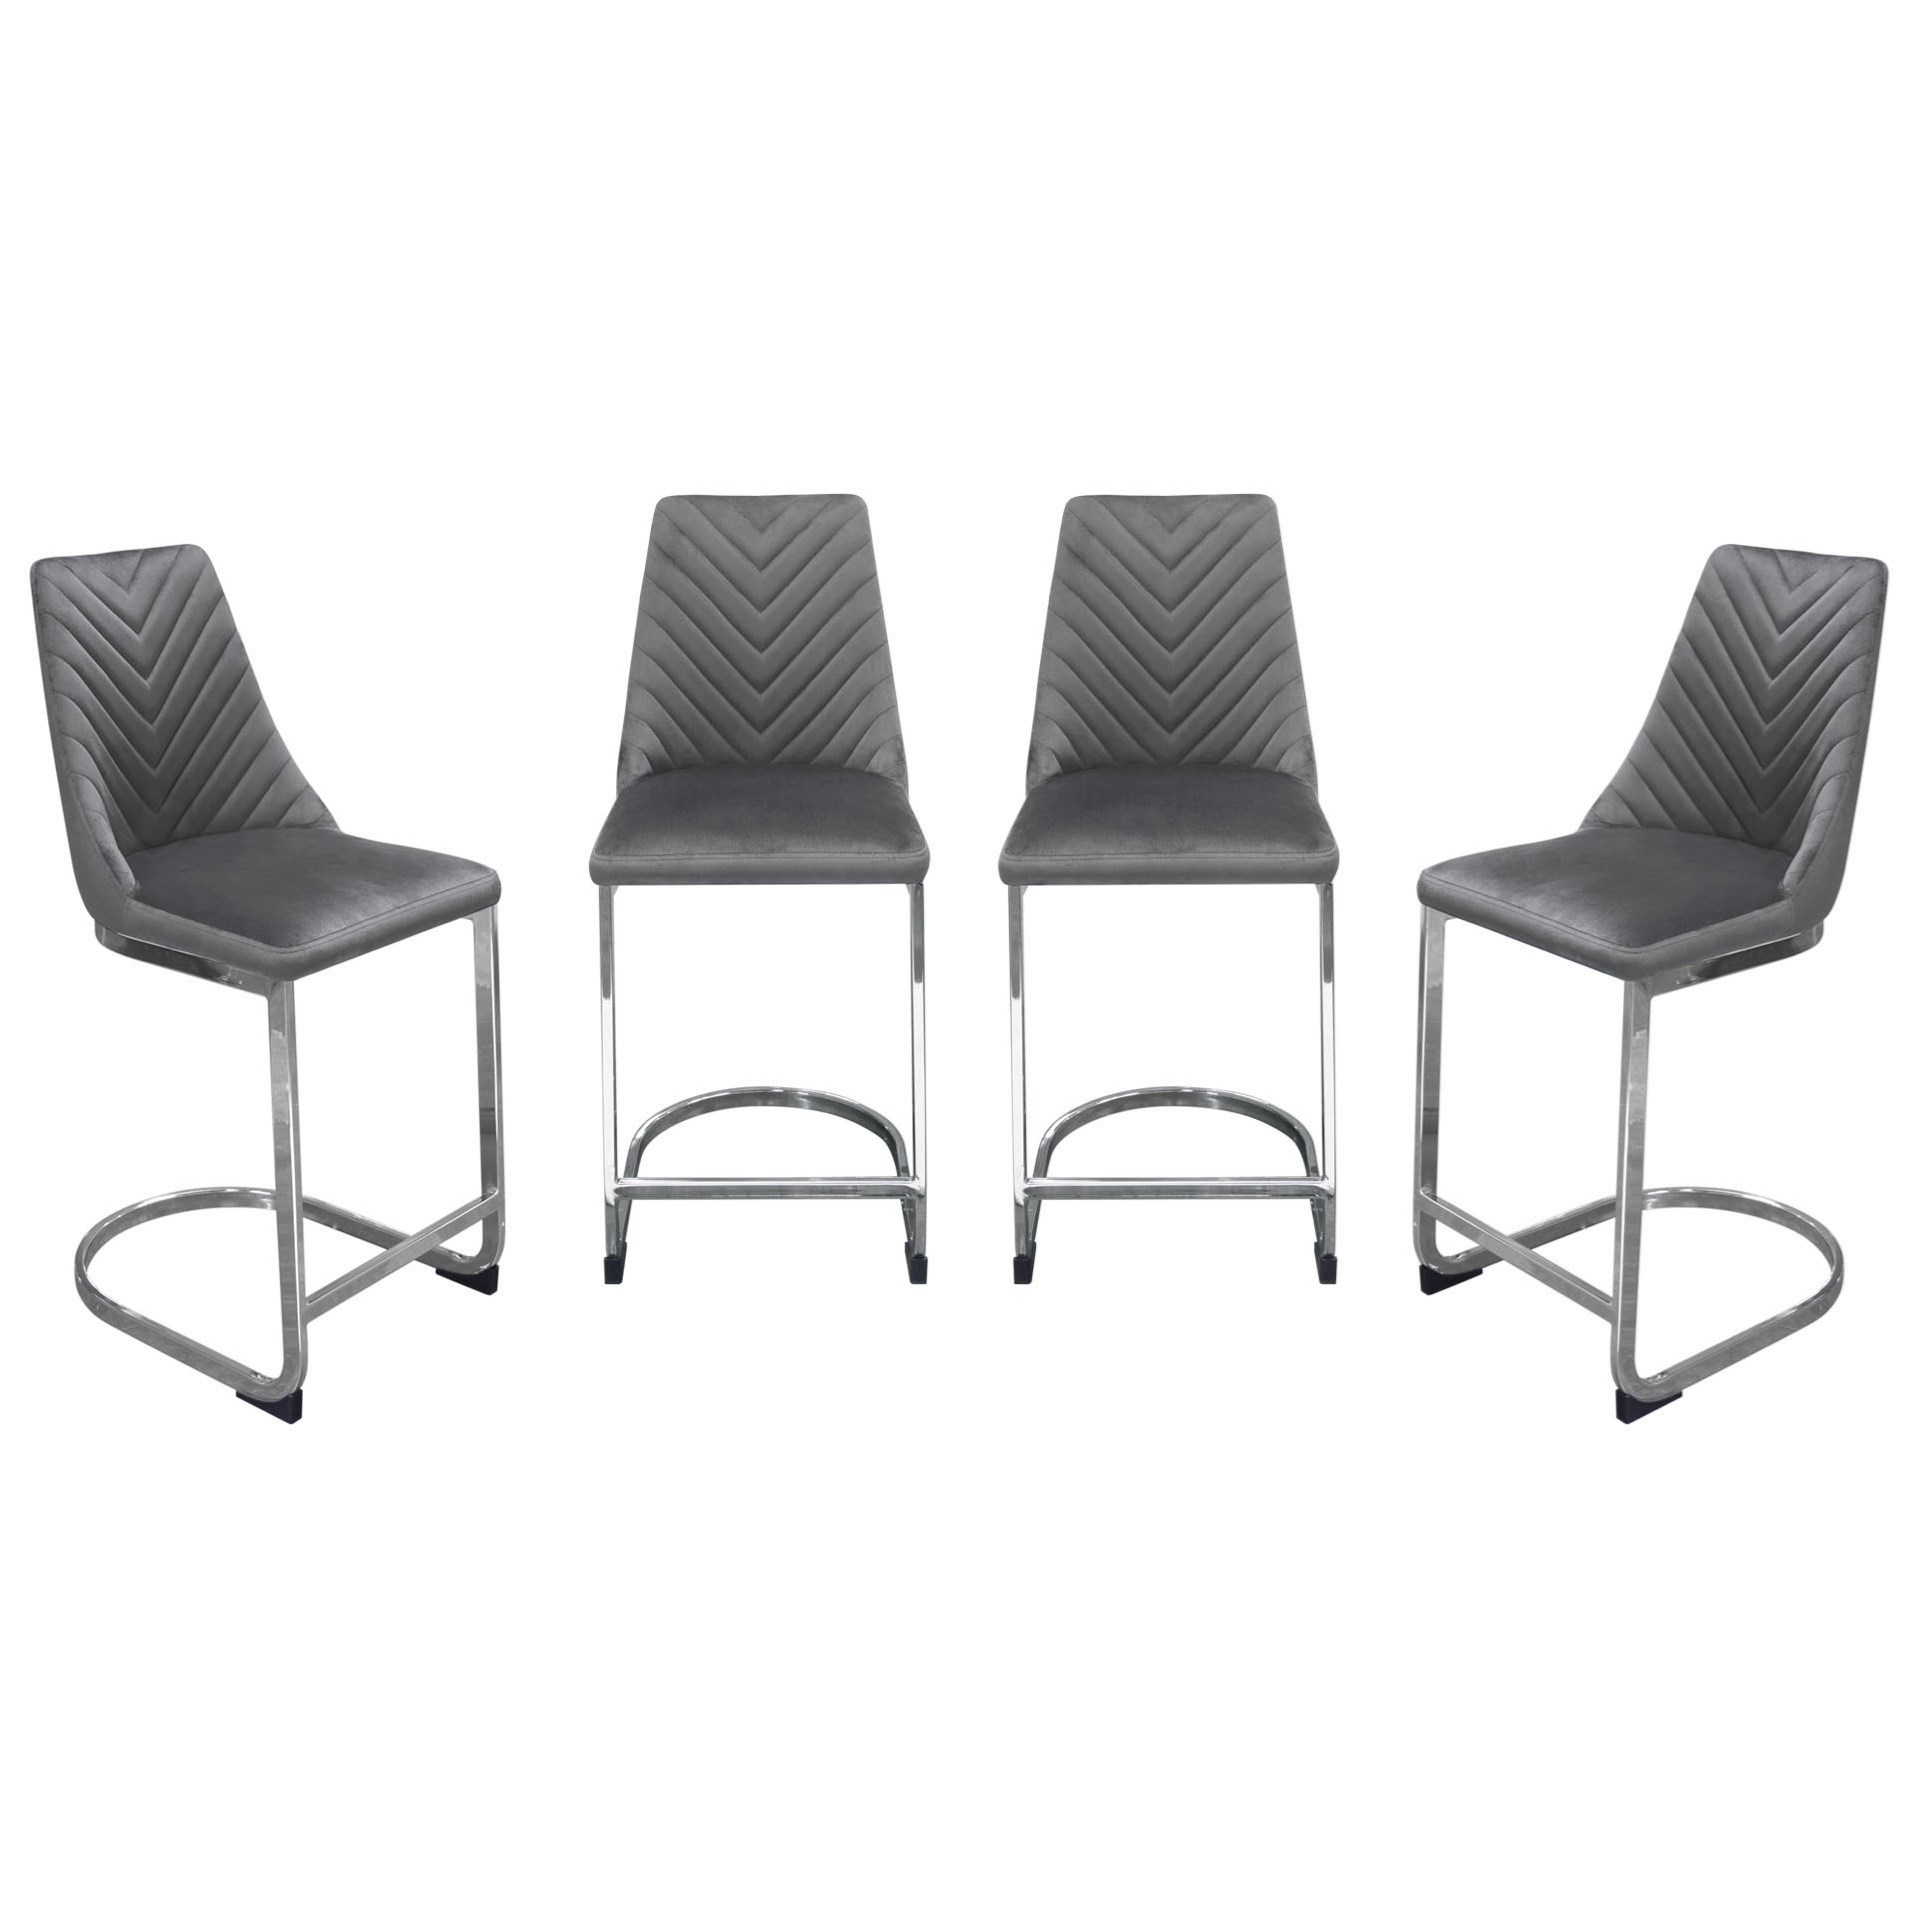 Vogue Counter Height Chairs by Diamond Sofa at Red Knot